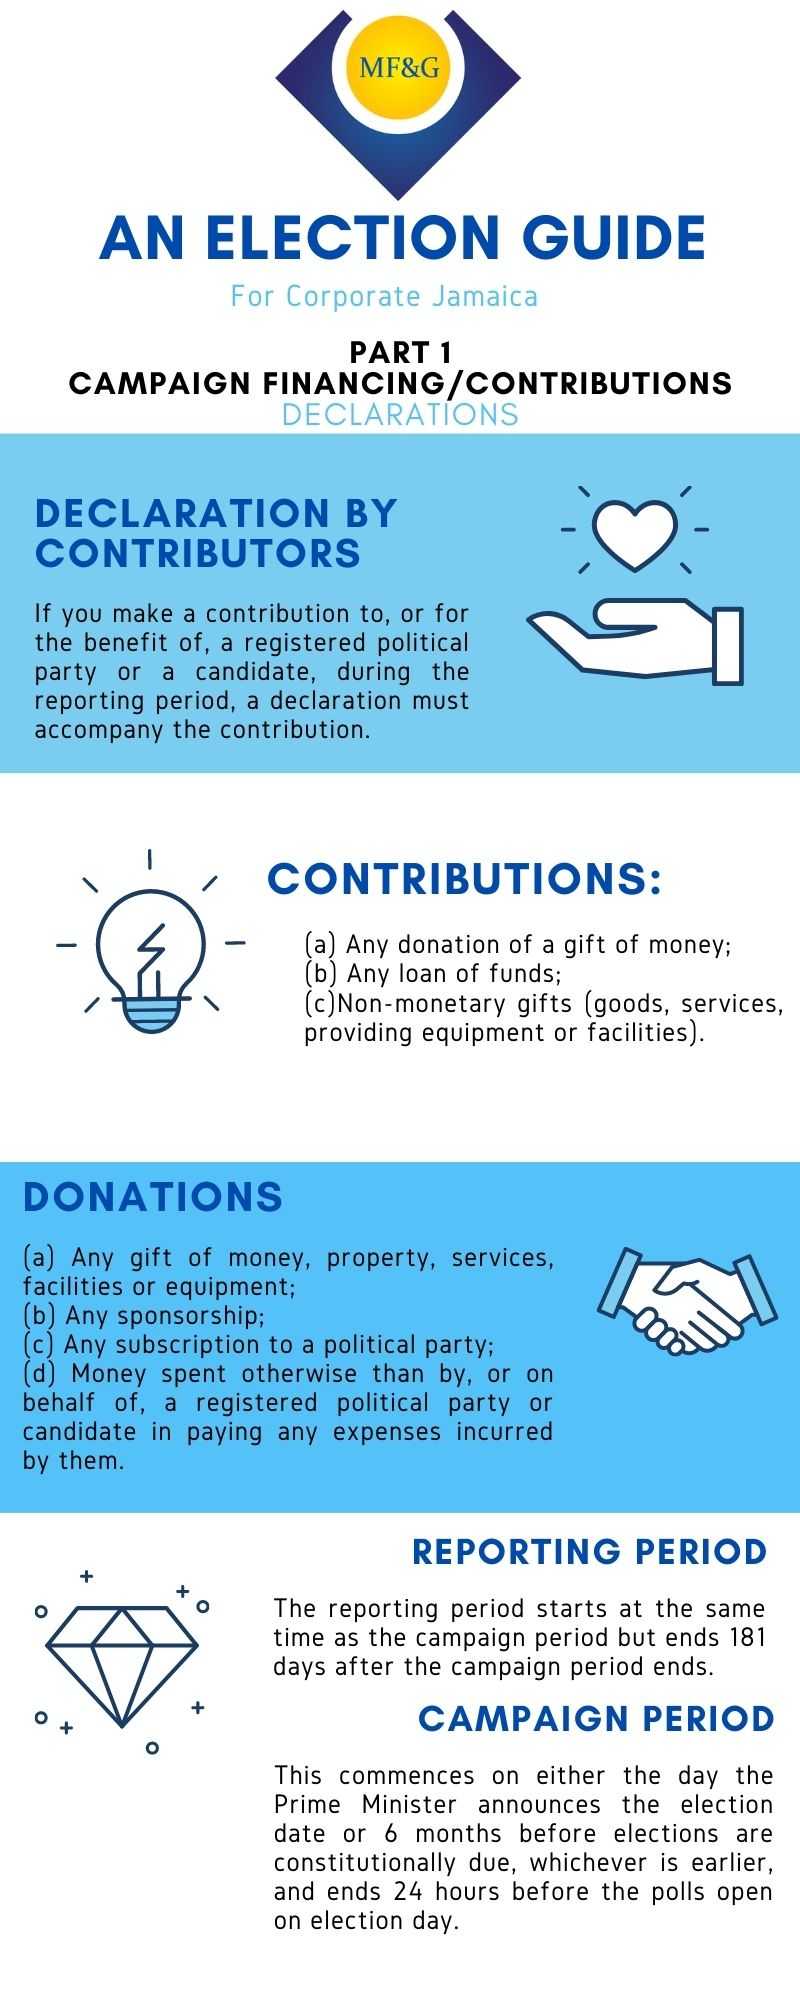 An Election Guide for Corporate Jamaica Part 1 (1).jpg